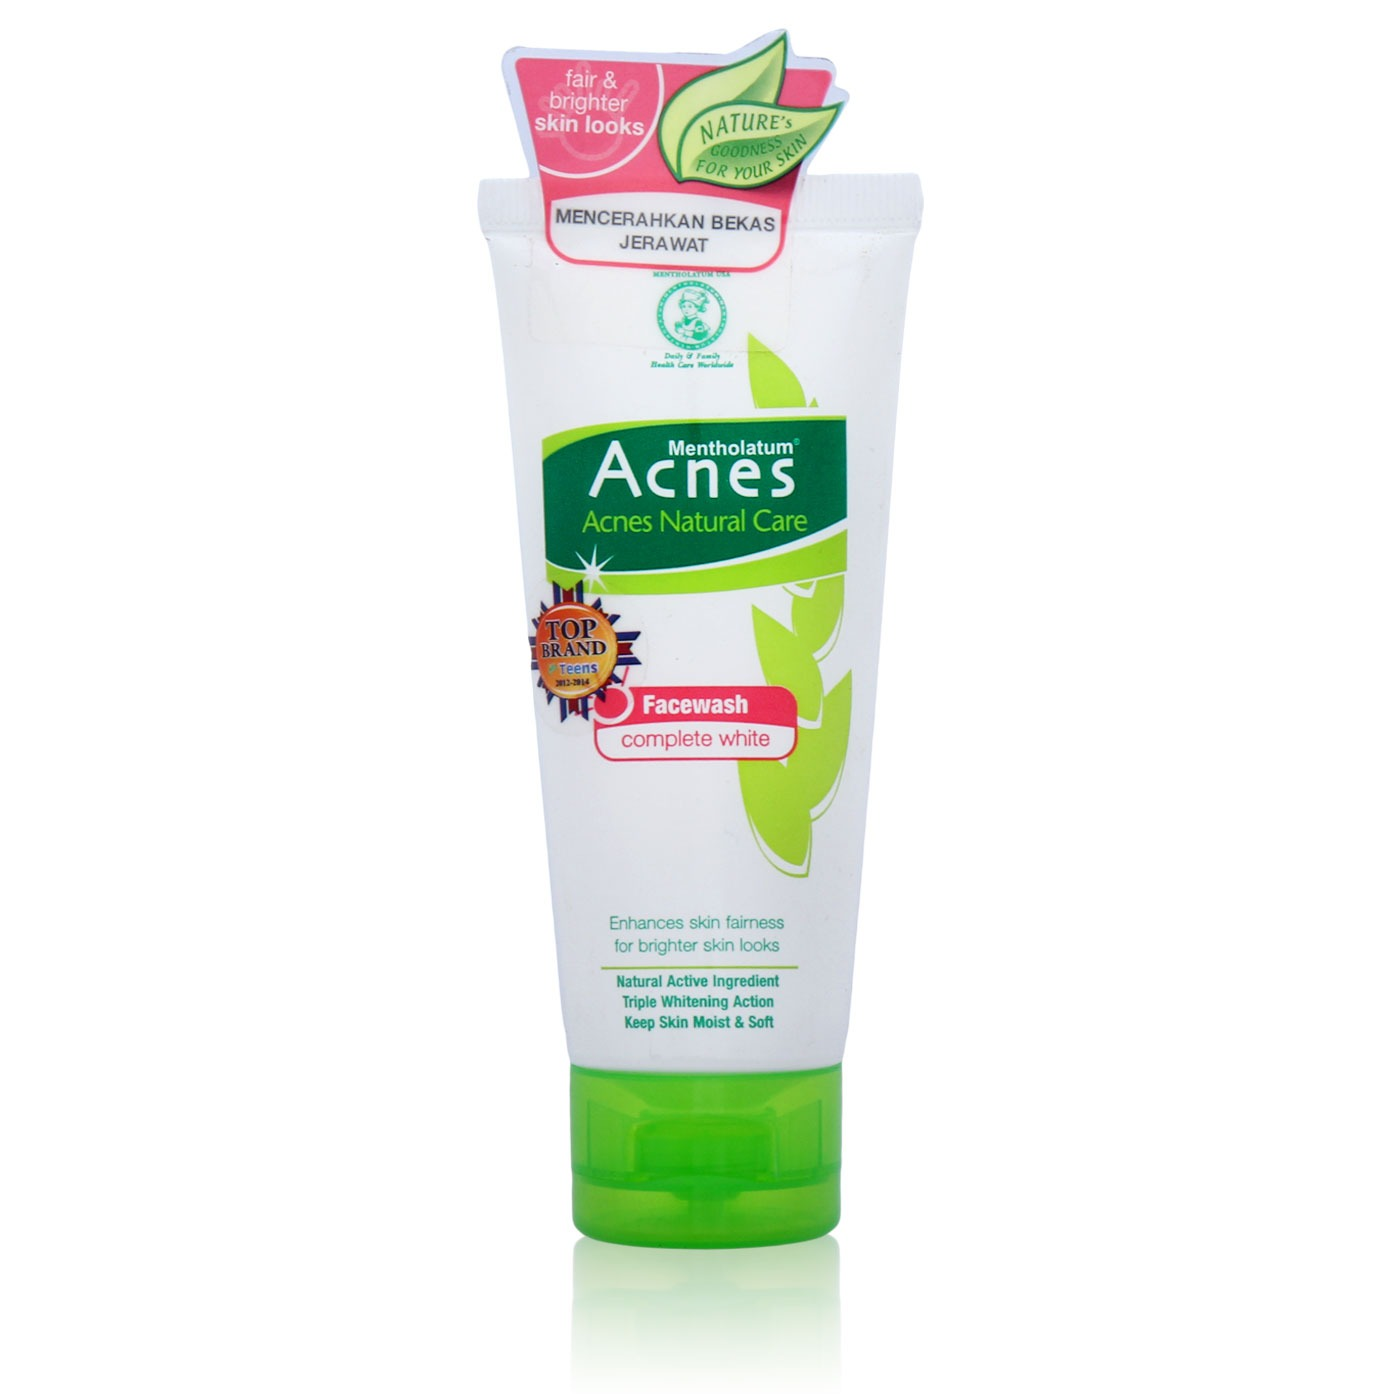 Acnes Natural Care Complete White Face Wash